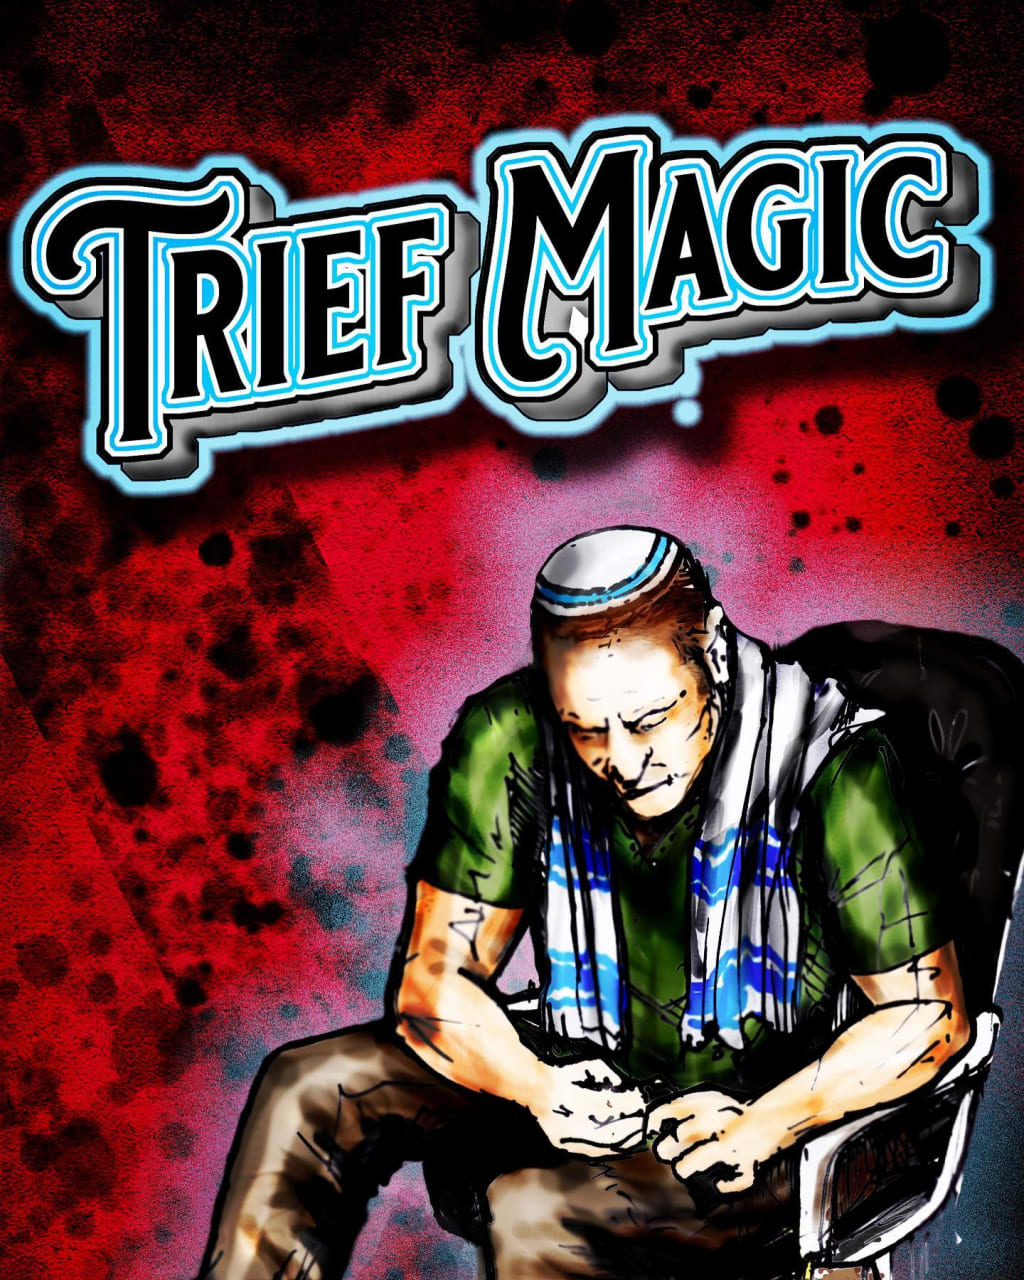 Reed Alexander's Literary Review of 'Trief Magic' (2020) by John Baltisberger